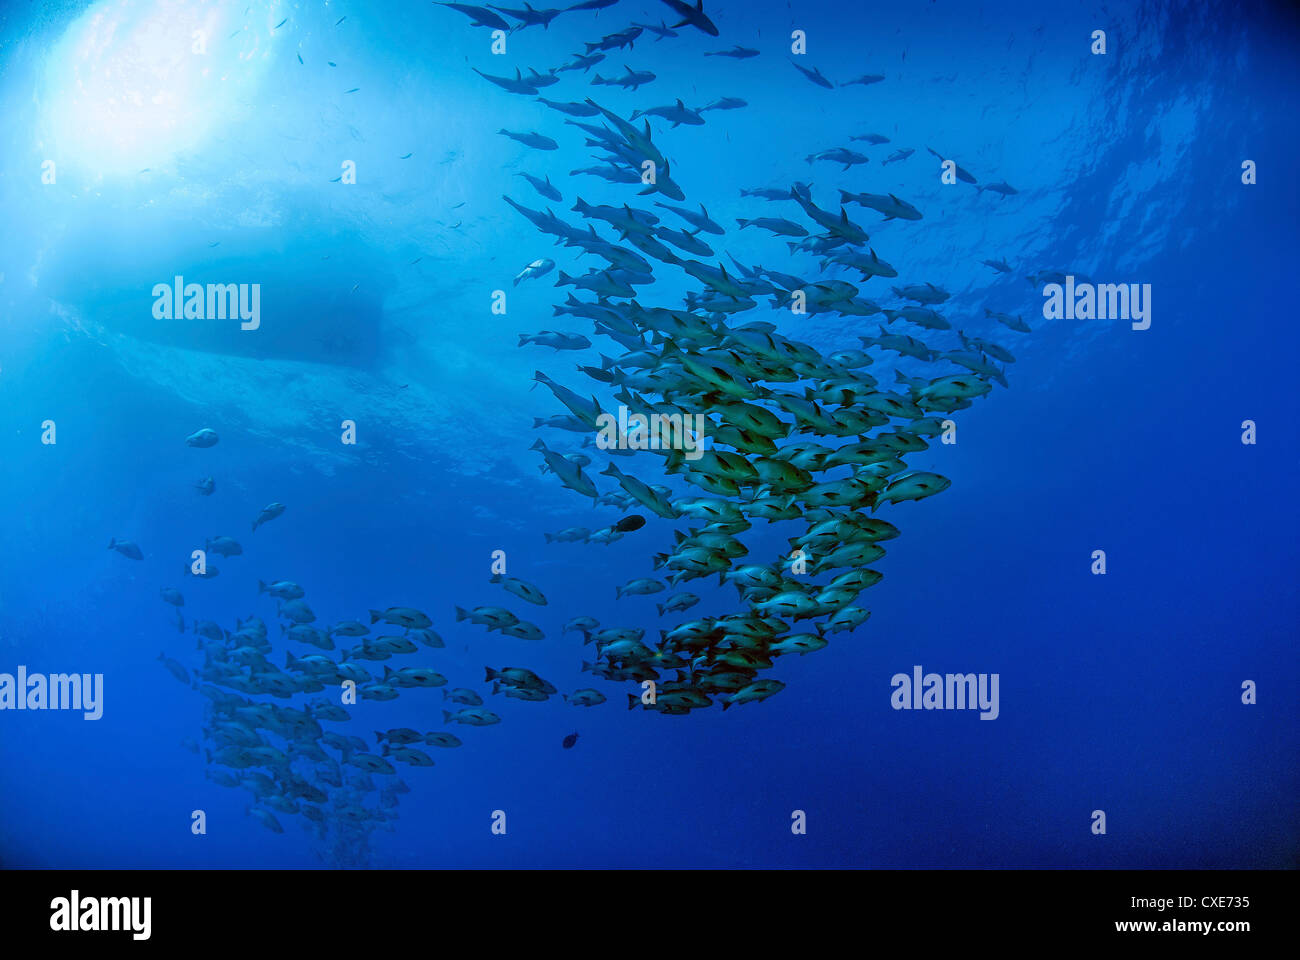 Scuba diver and schooling fish, Ras Mohammed, Egypt - Stock Image